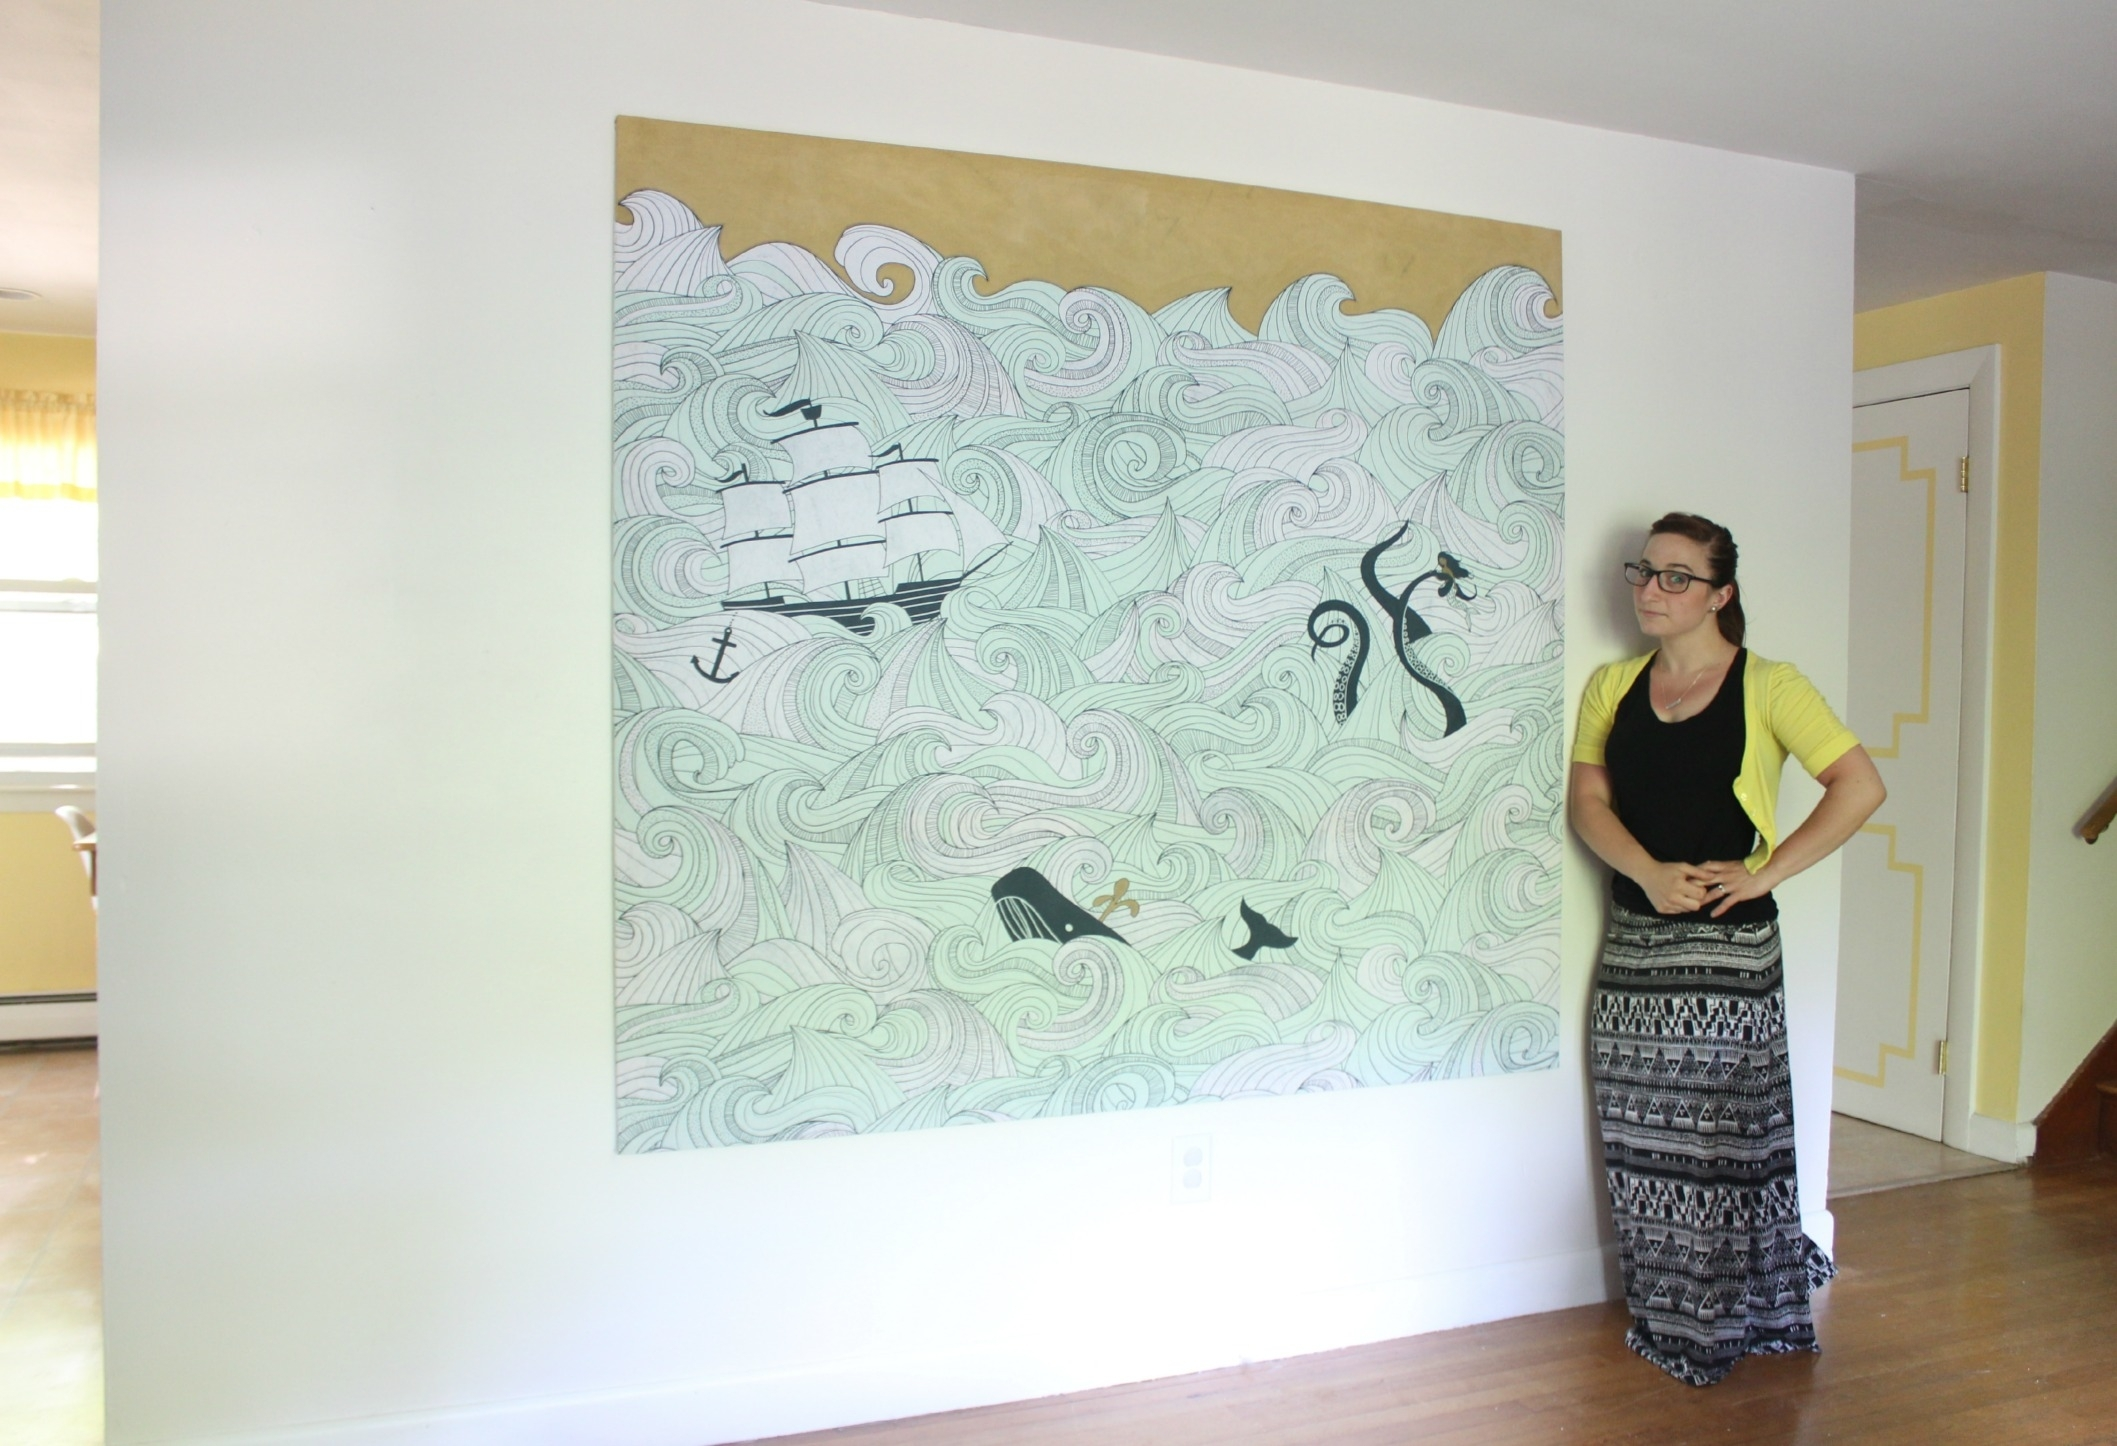 Diy Stretched Fabric Canvas (With A Shower Curtain!) | Stephanie Inside Newest Marimekko Fabric Wall Art (View 4 of 15)